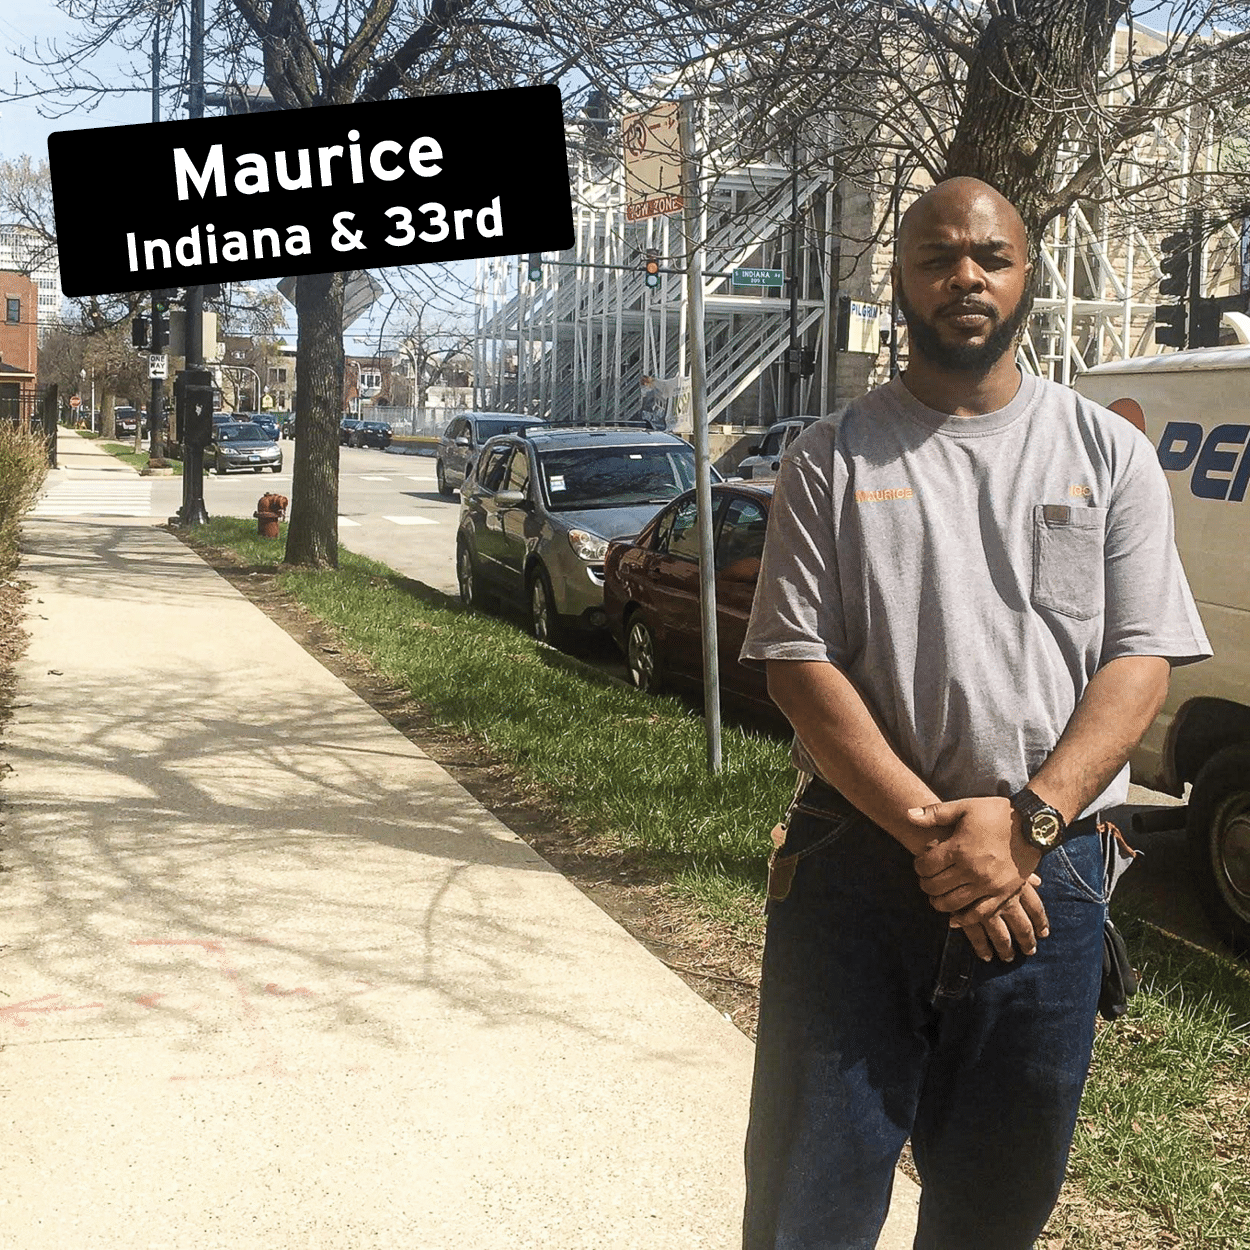 Maurice at the corner of Indiana & 33rd